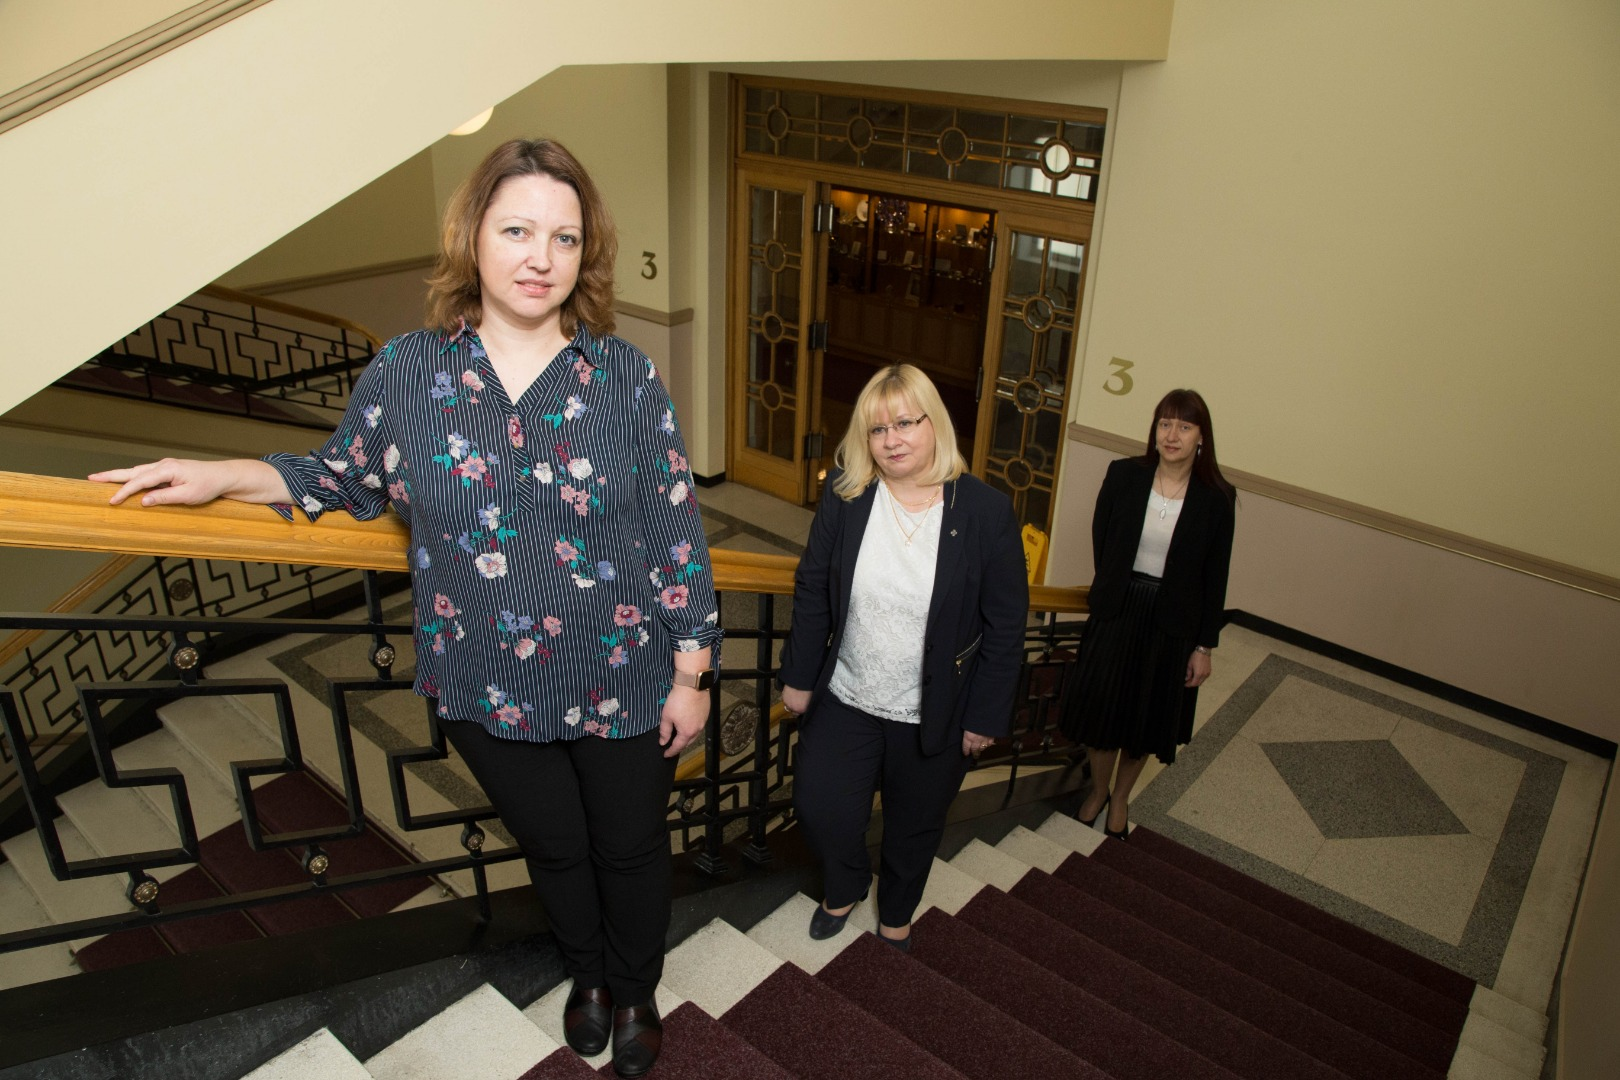 01.02.2021. Judges of lower courts Daiga Lubane, Silva Reinholde, and Iveta Stuberovska are taking an internship at the Supreme Court for 6 months